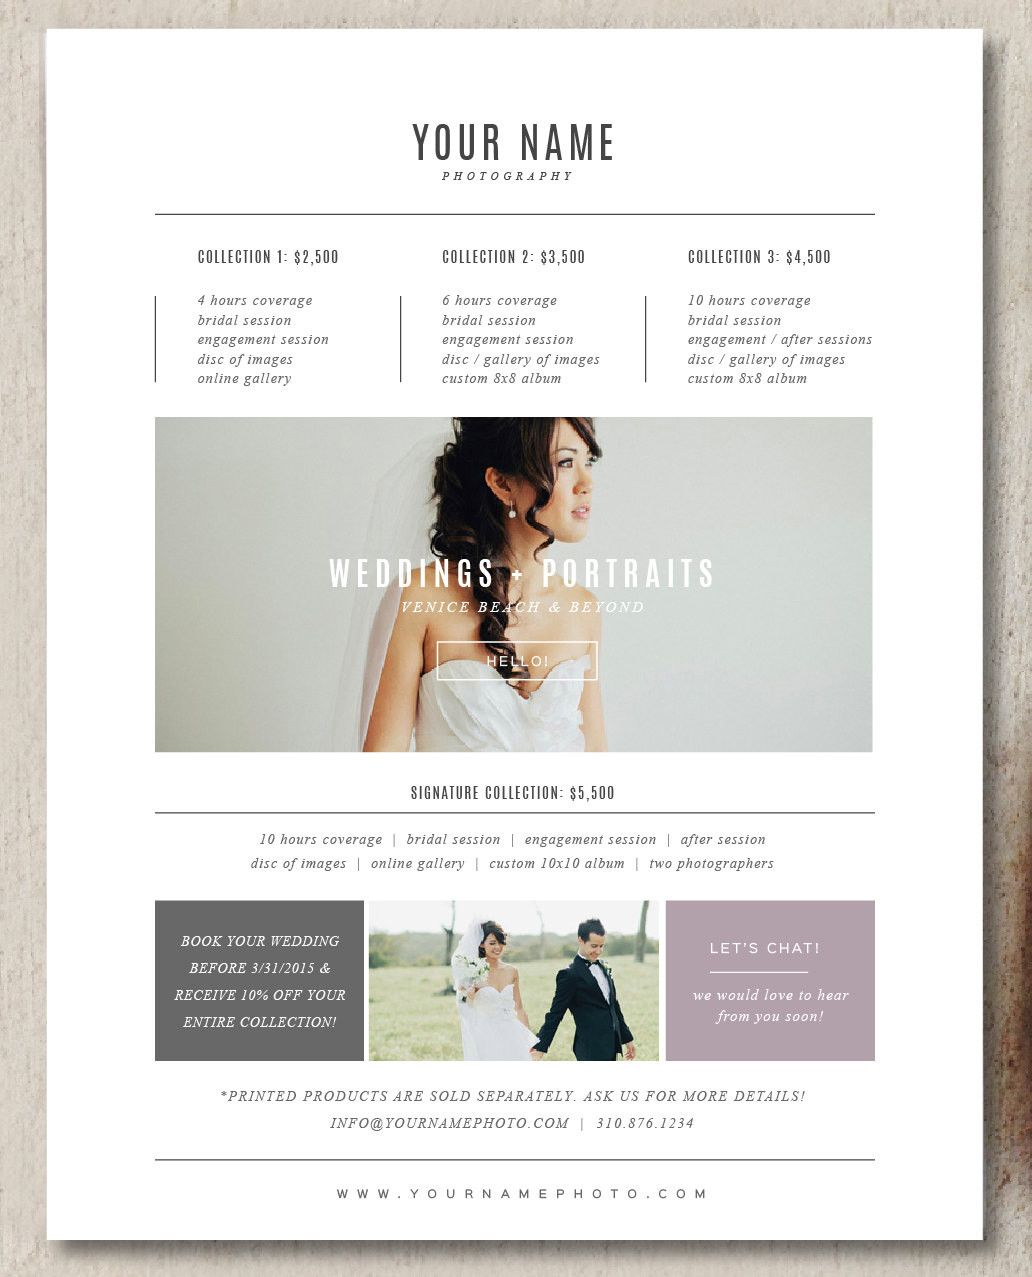 Pricing Guide Template | Professional Wedding Photographer Pricing ...